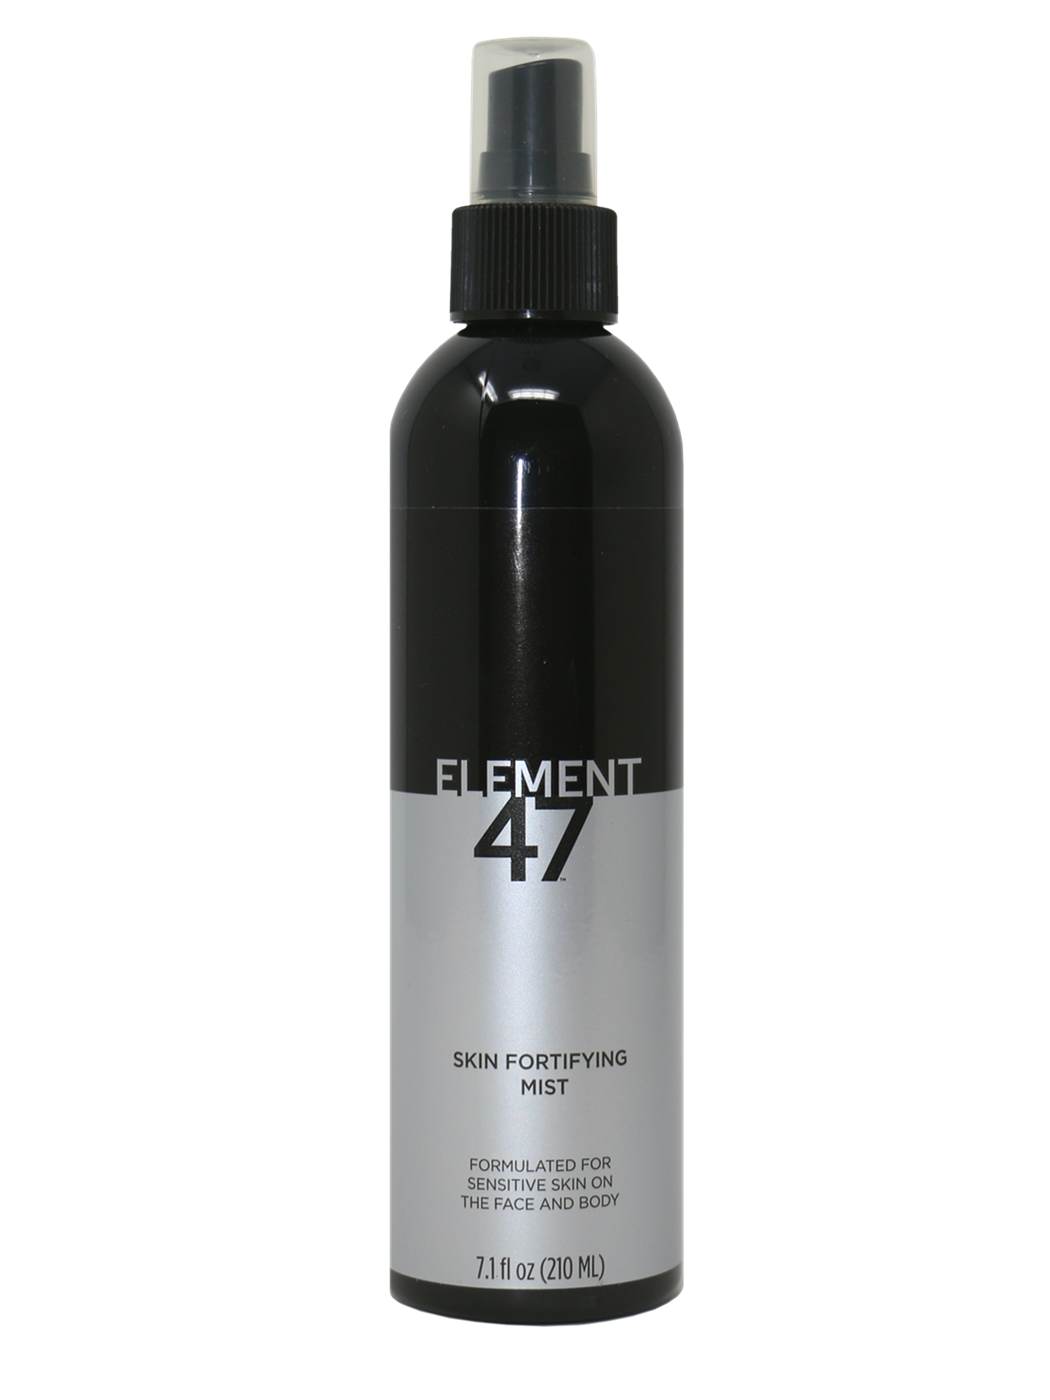 Element 47 Skin Fortifying Mist-Spa361 at The Dermatology and Skin Cancer Institute